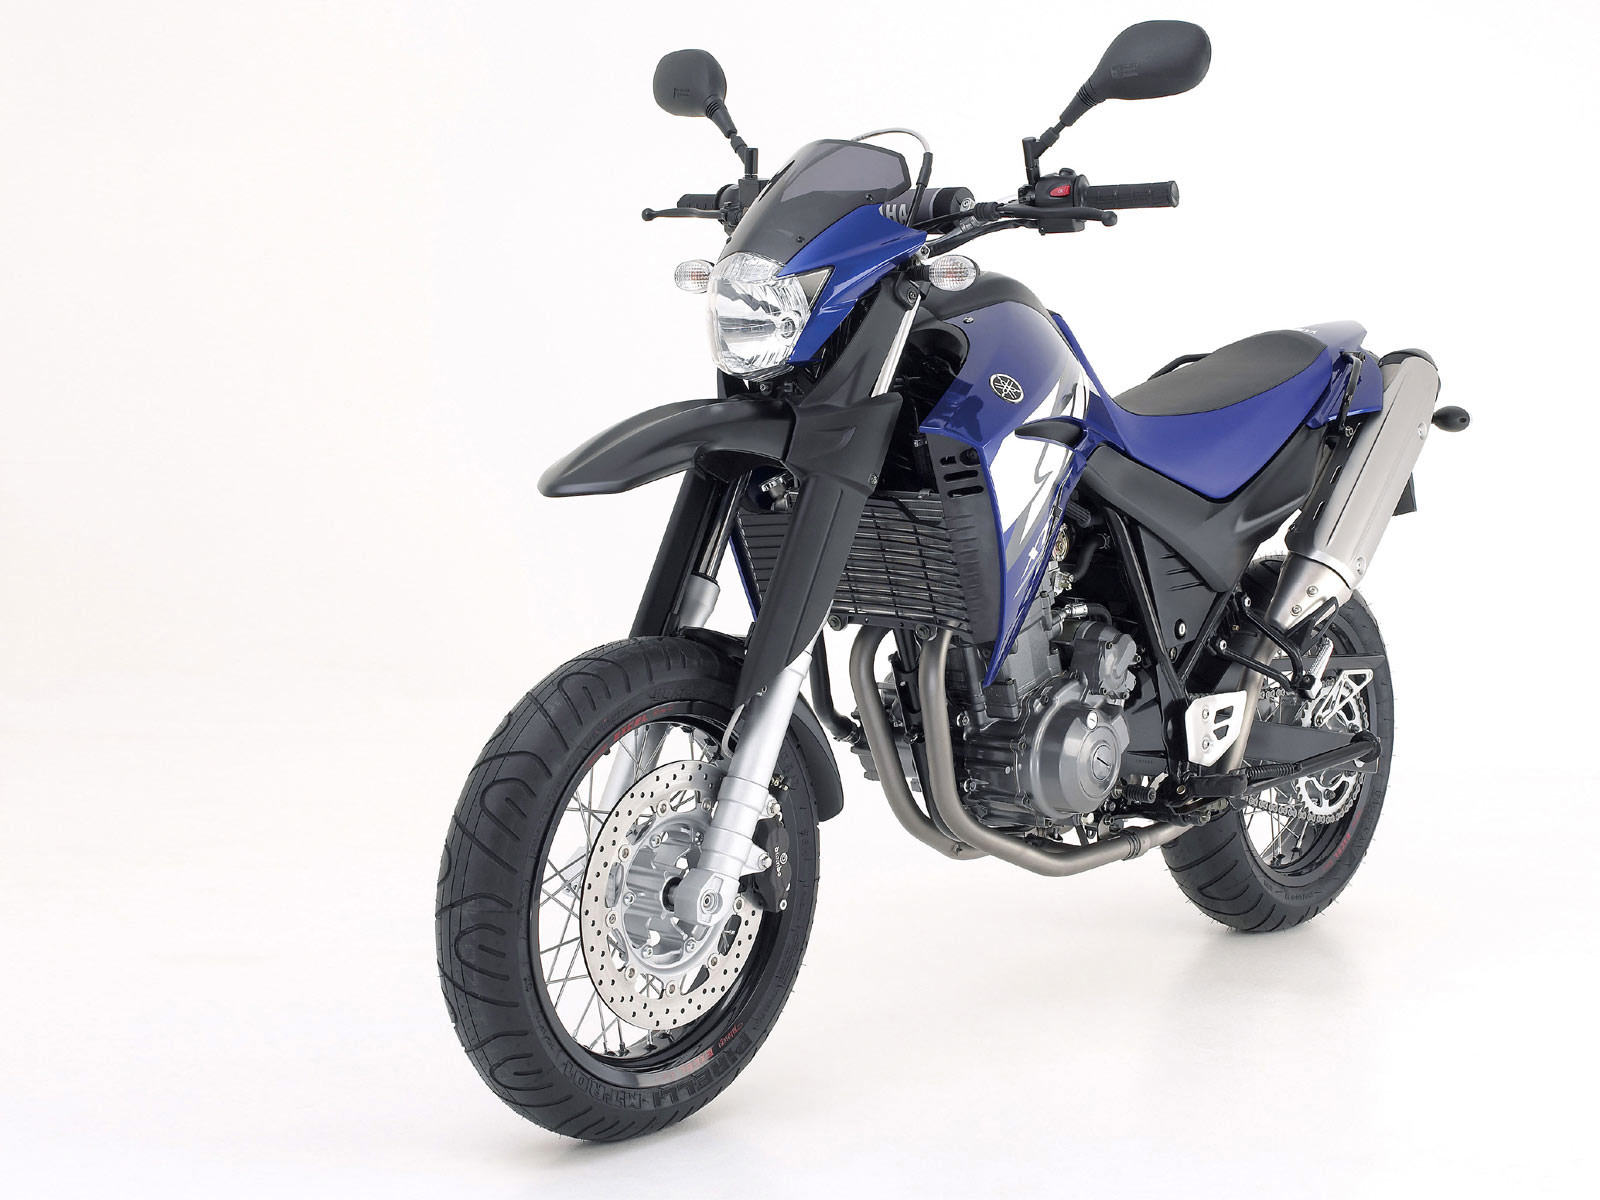 2005 yamaha xt660x motorcycle pictures. Black Bedroom Furniture Sets. Home Design Ideas